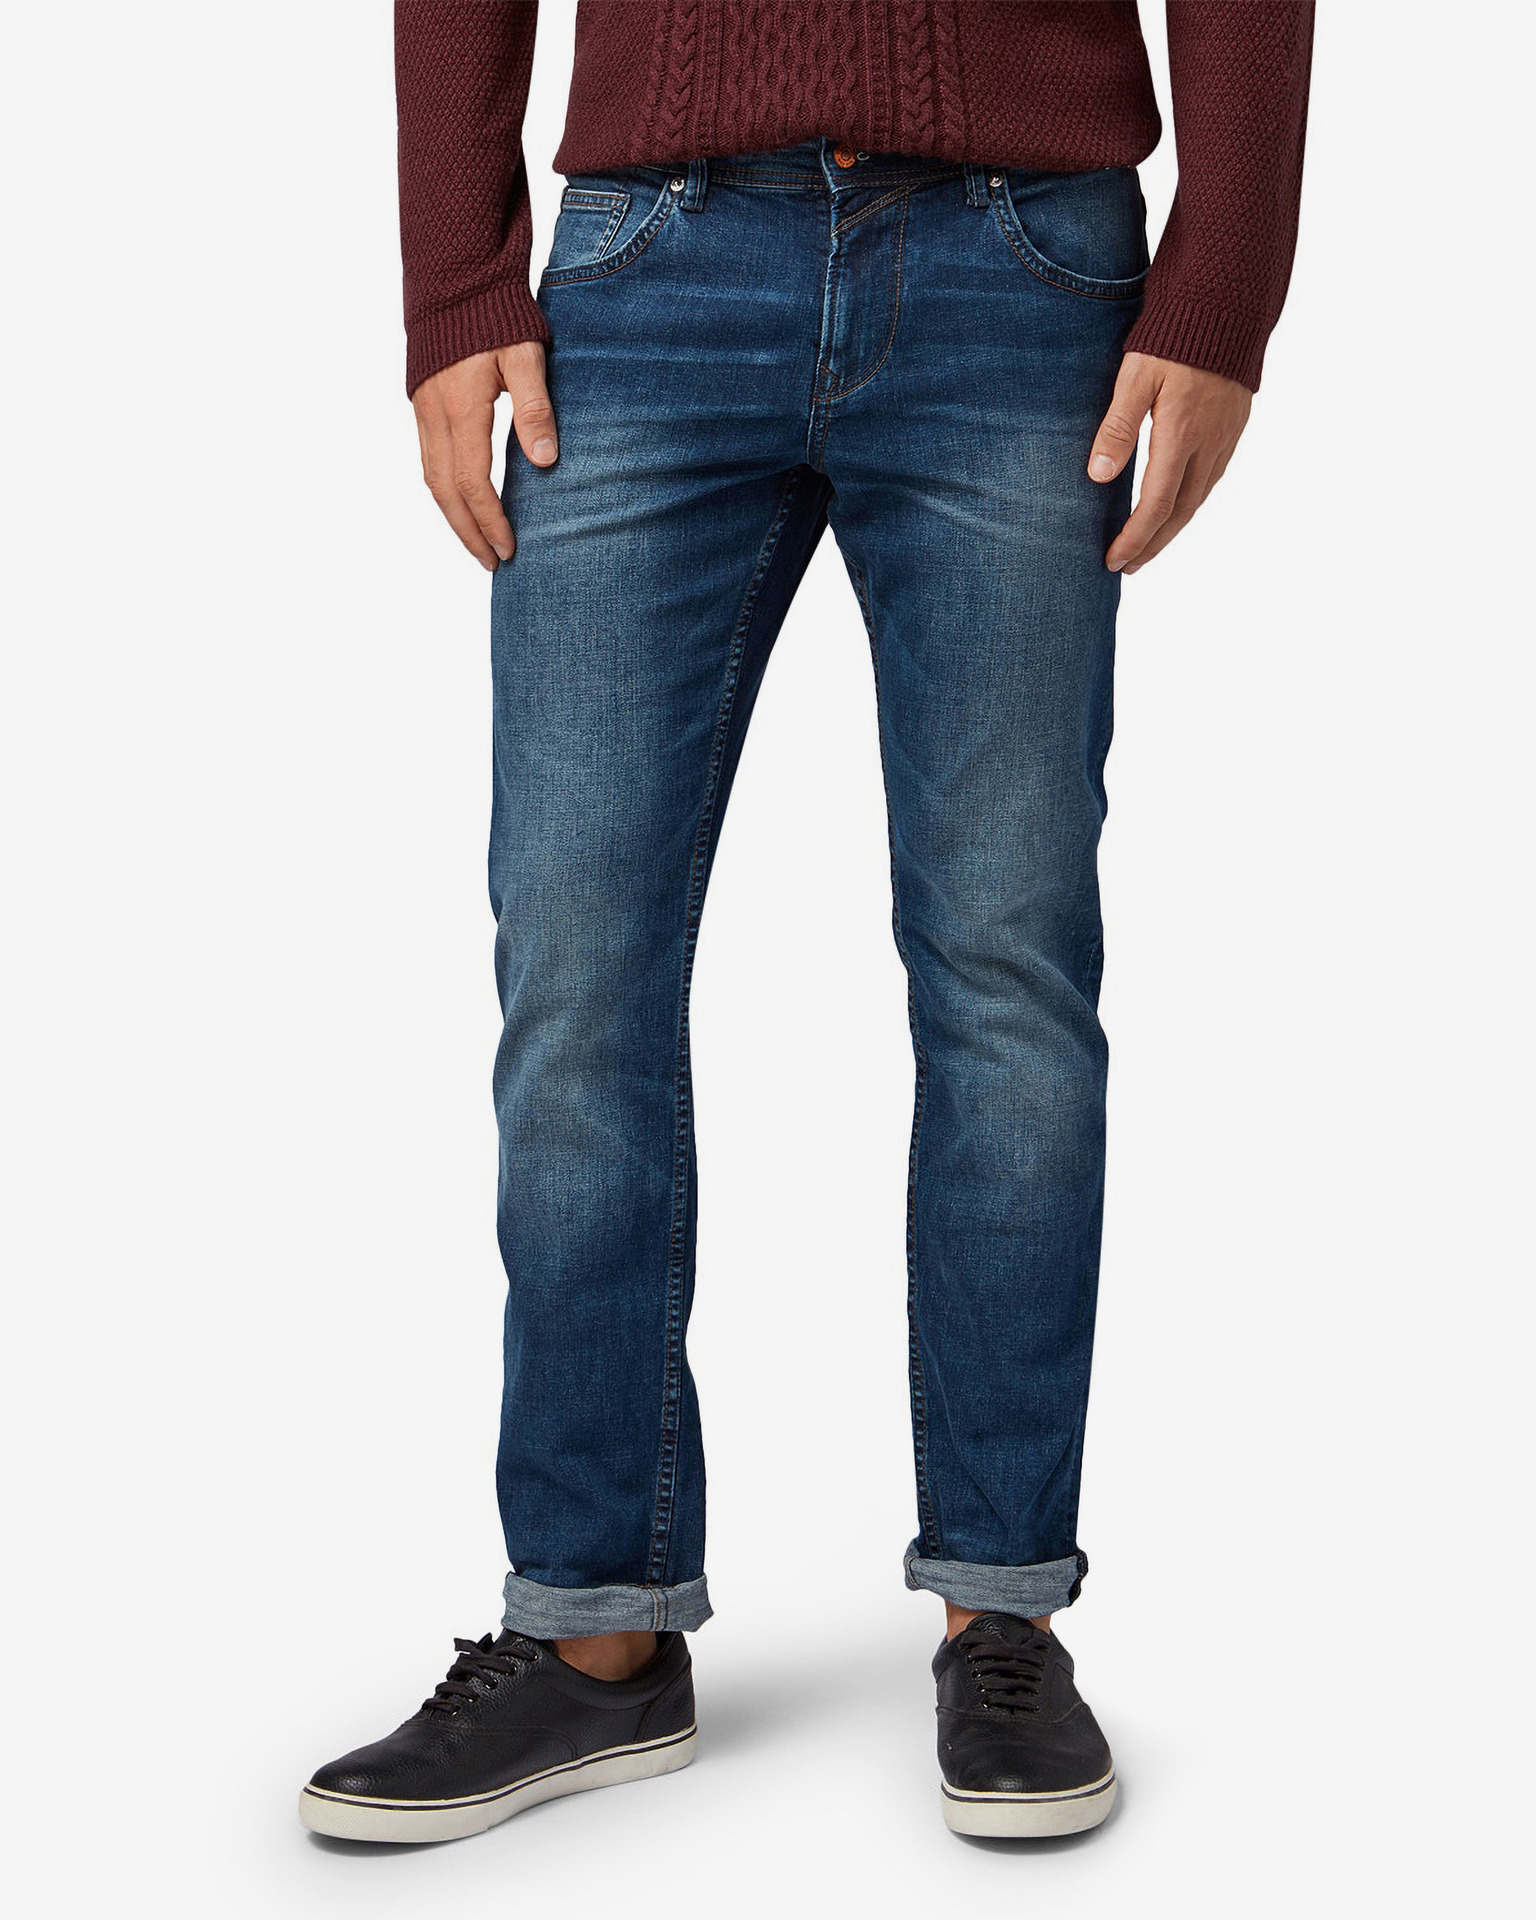 Aedan Jeans Tom Tailor